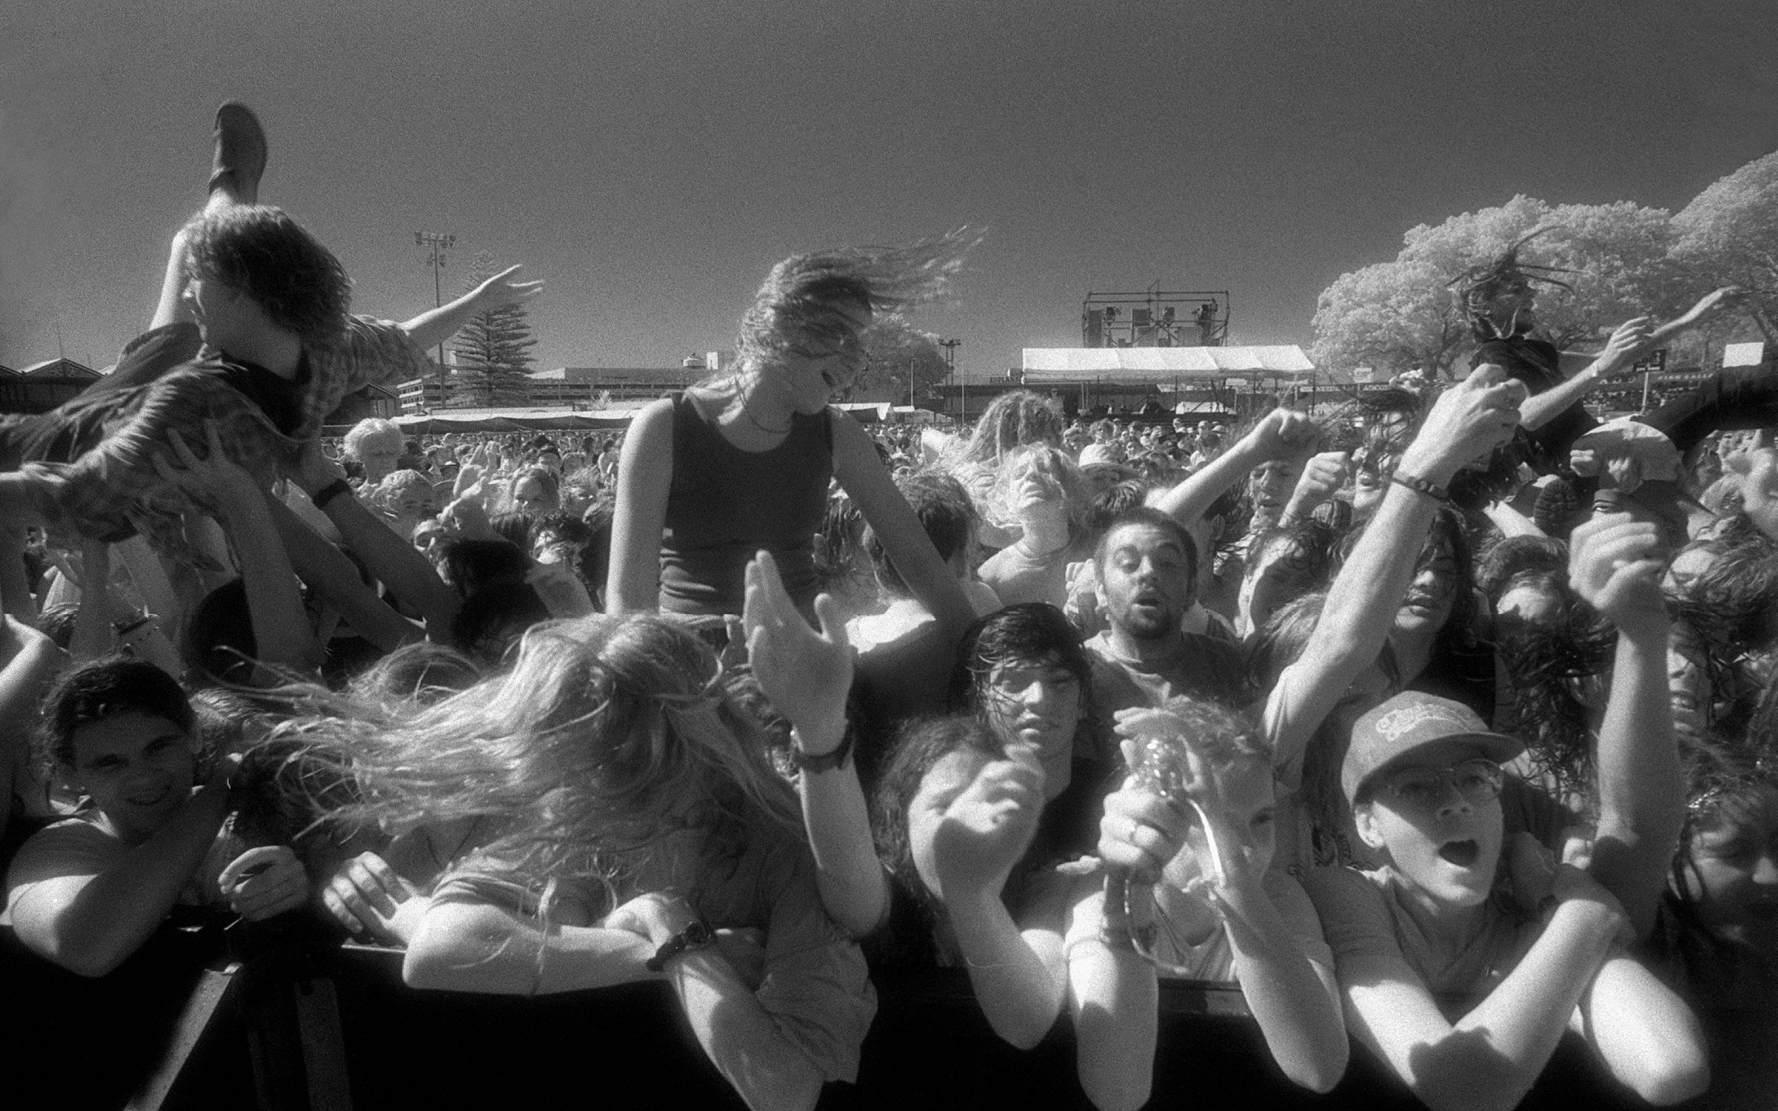 Front row of the crowd at the Big Day Out Festival Perth Joondalup W.Australia 1990's  ©  Michael Wylie  / PYMCA